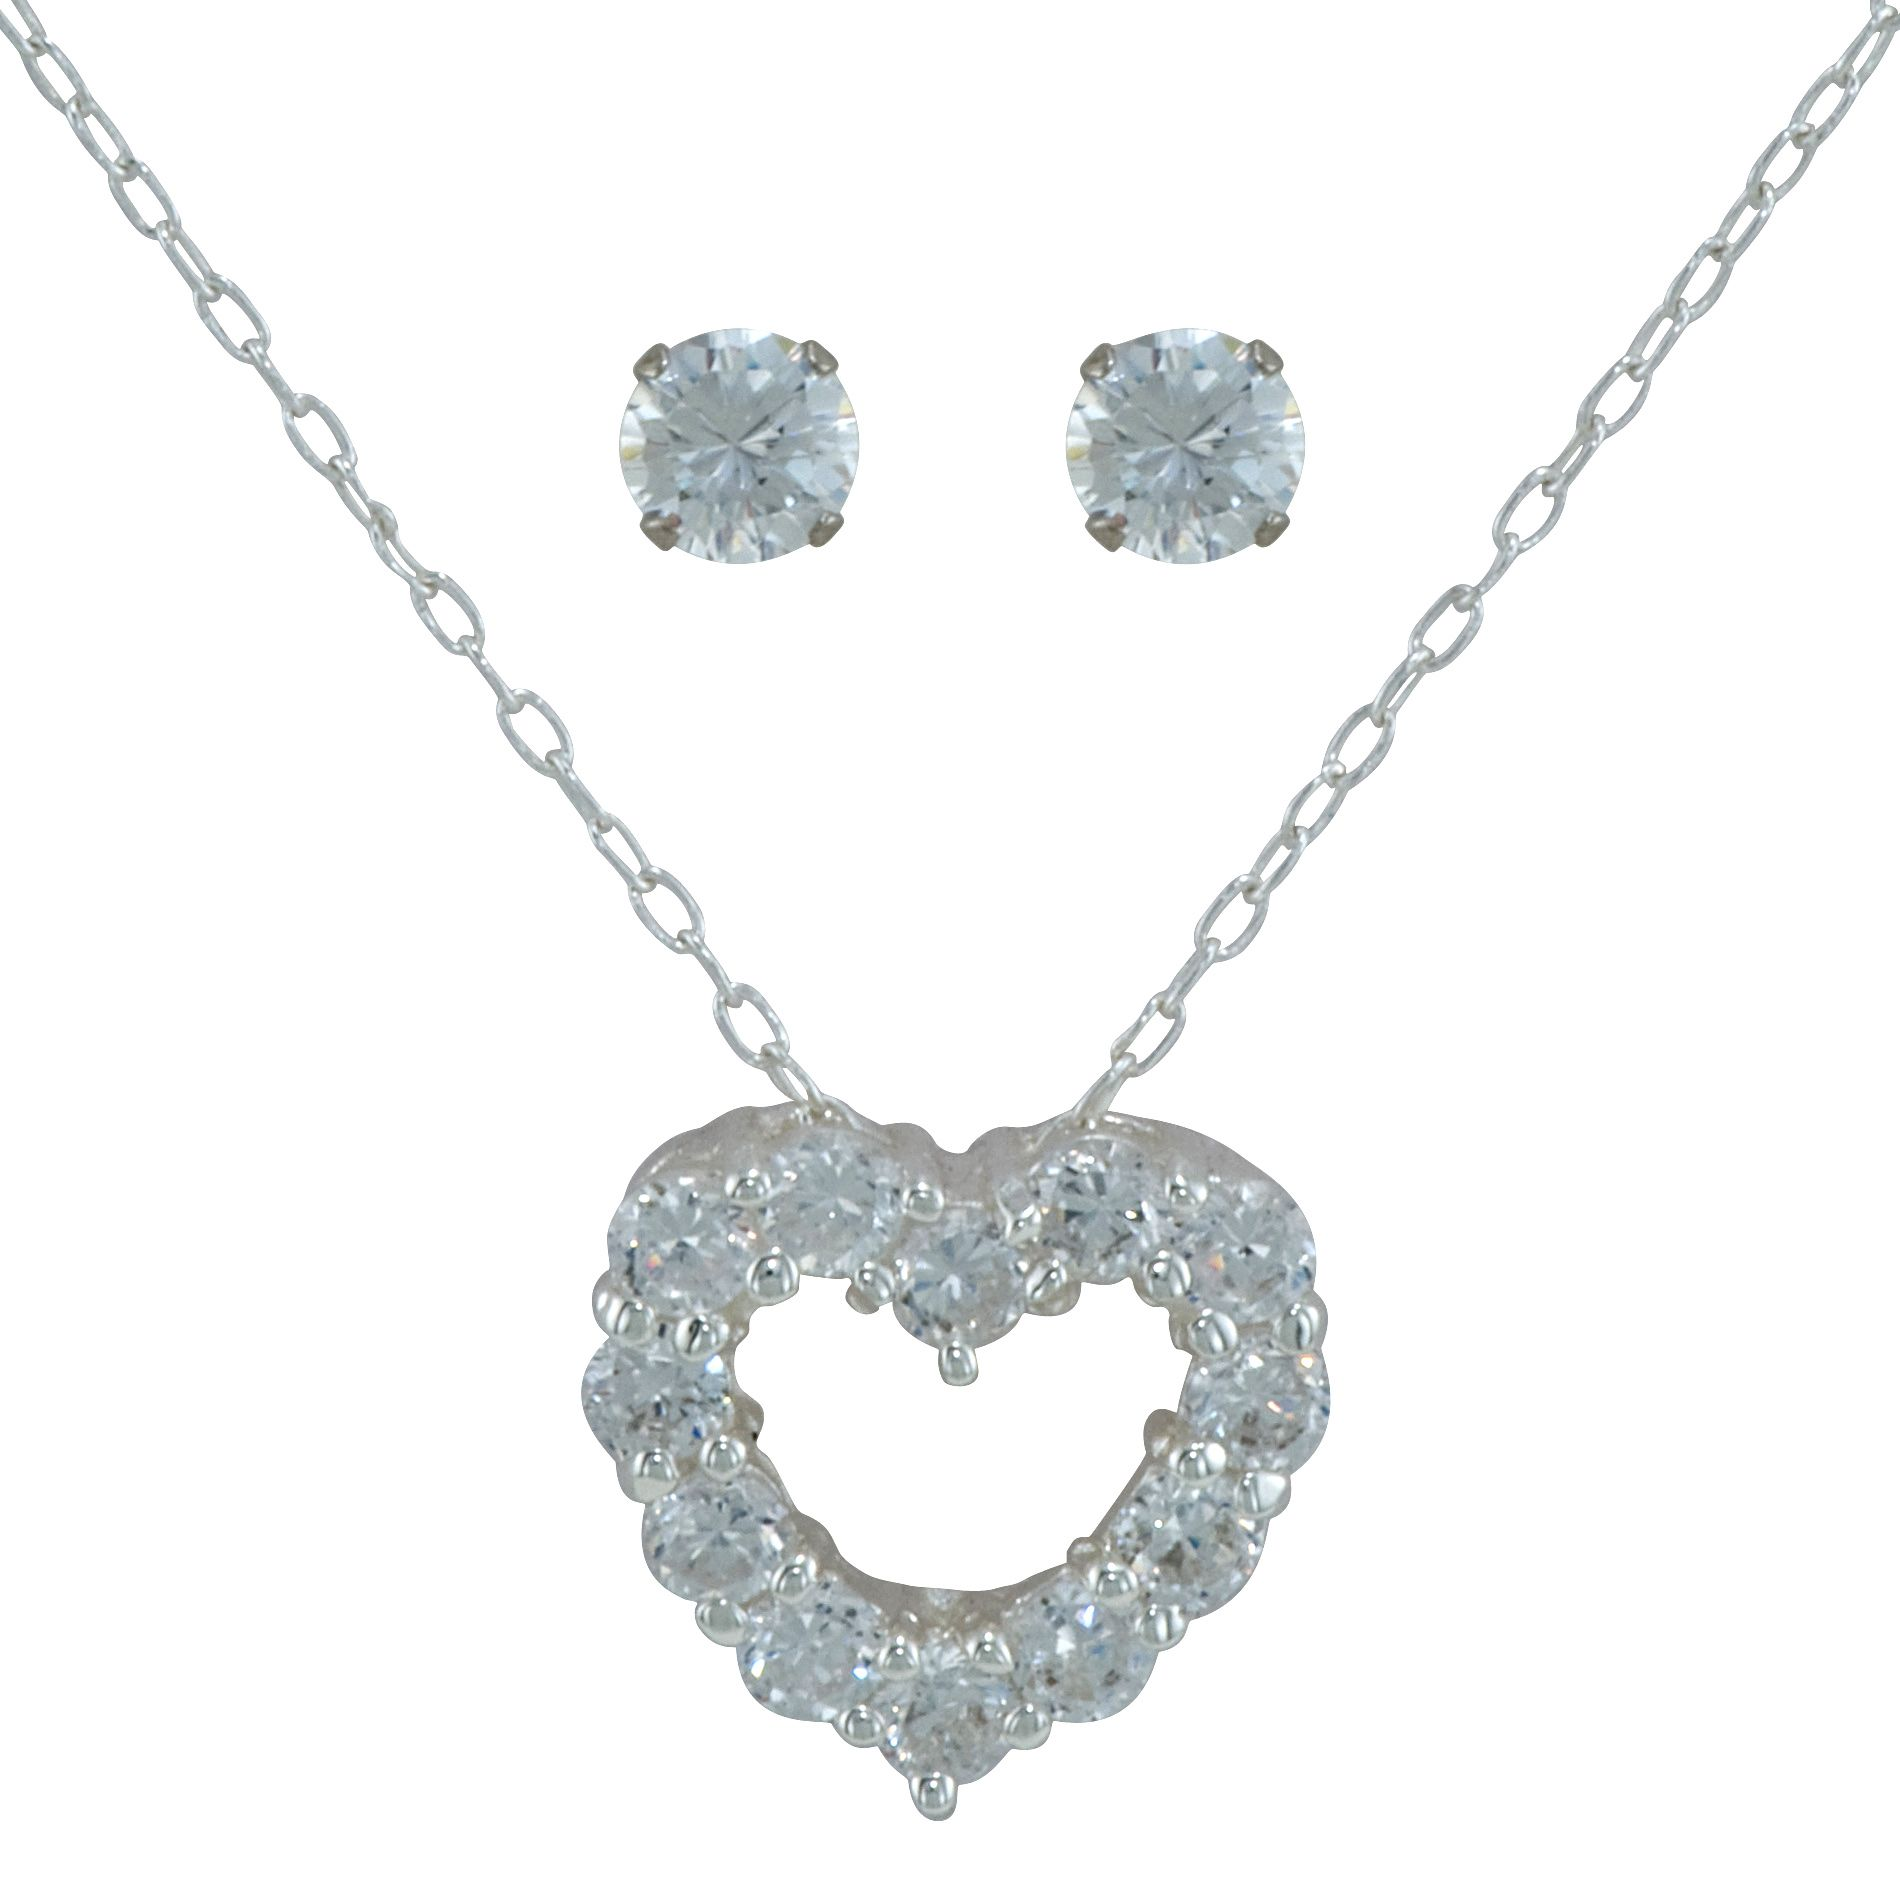 Sterling Silver and Cubic Zirconia Heart Pendant & Earring Set                                                                   at mygofer.com